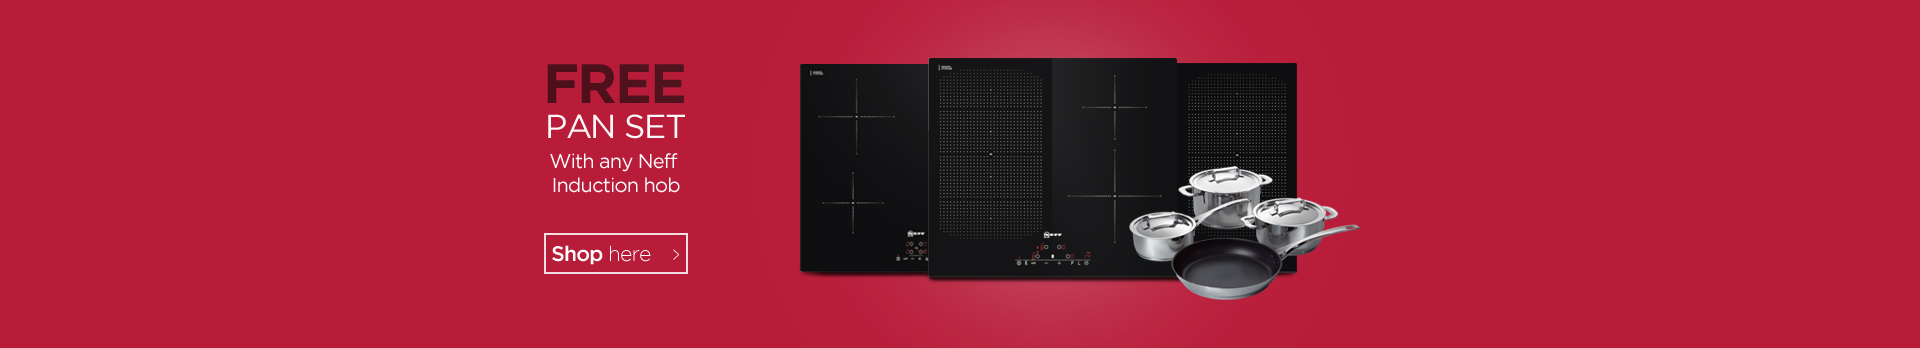 Free induction pan set when you buy any Neff induction hob